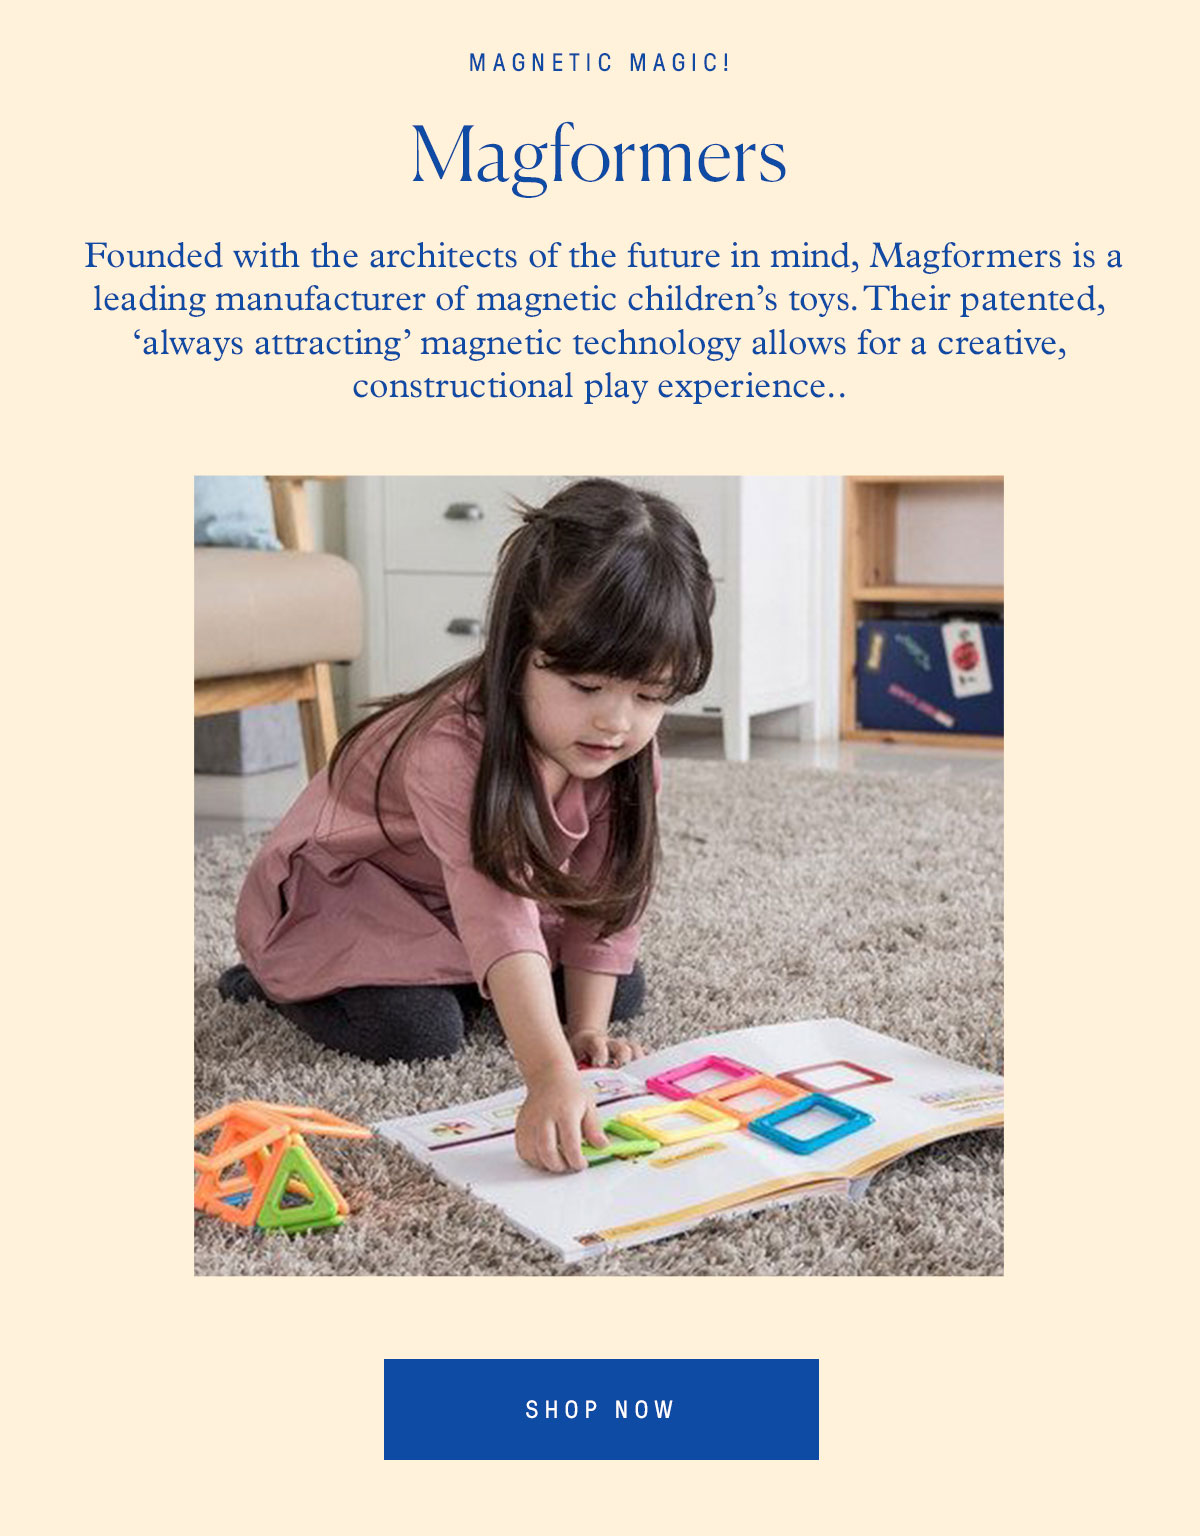 Magnetic Magic! Magformers Founded with the architects of the future in mind, Magformers is a leading manufacturer of magnetic children's toys. Through creativity, and their patented, 'always attracting' magnetic technology this line delivers a unique constructional play experience.